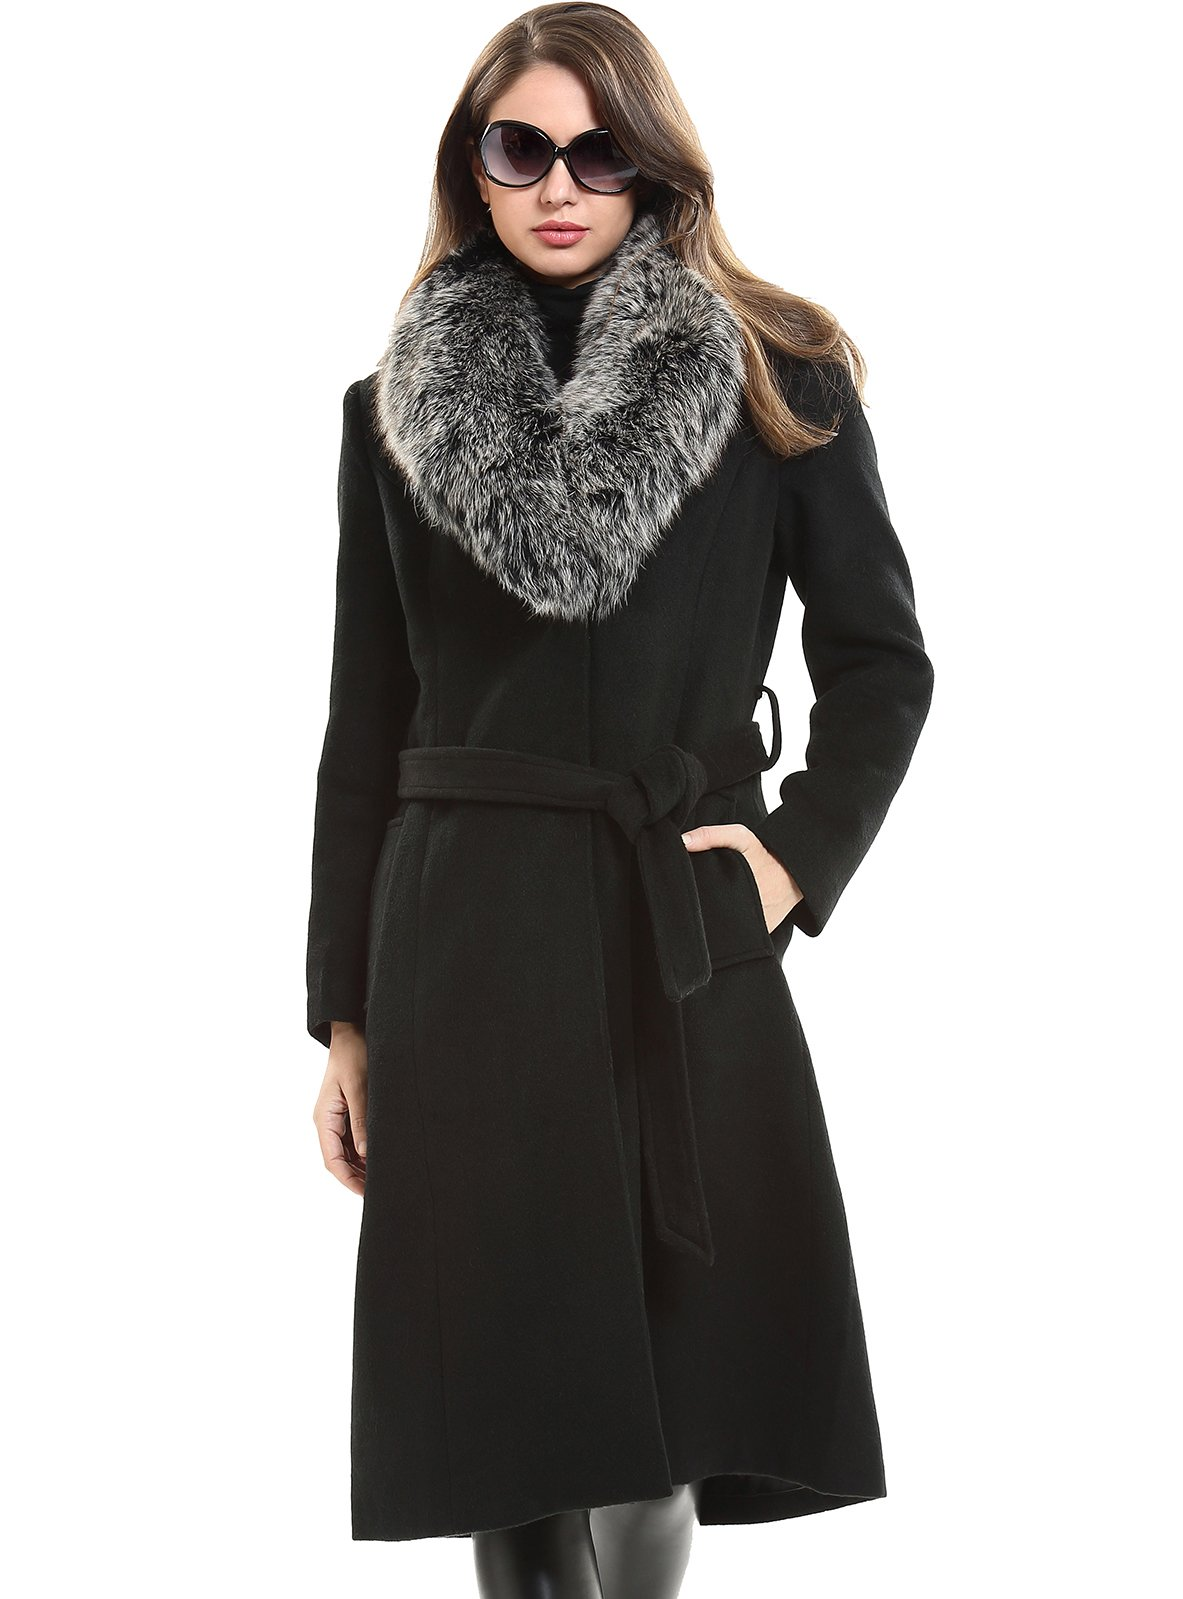 Escalier Women`s Trench Modern Outdoor Wool Blended Classic Pea Coat Jacket Black